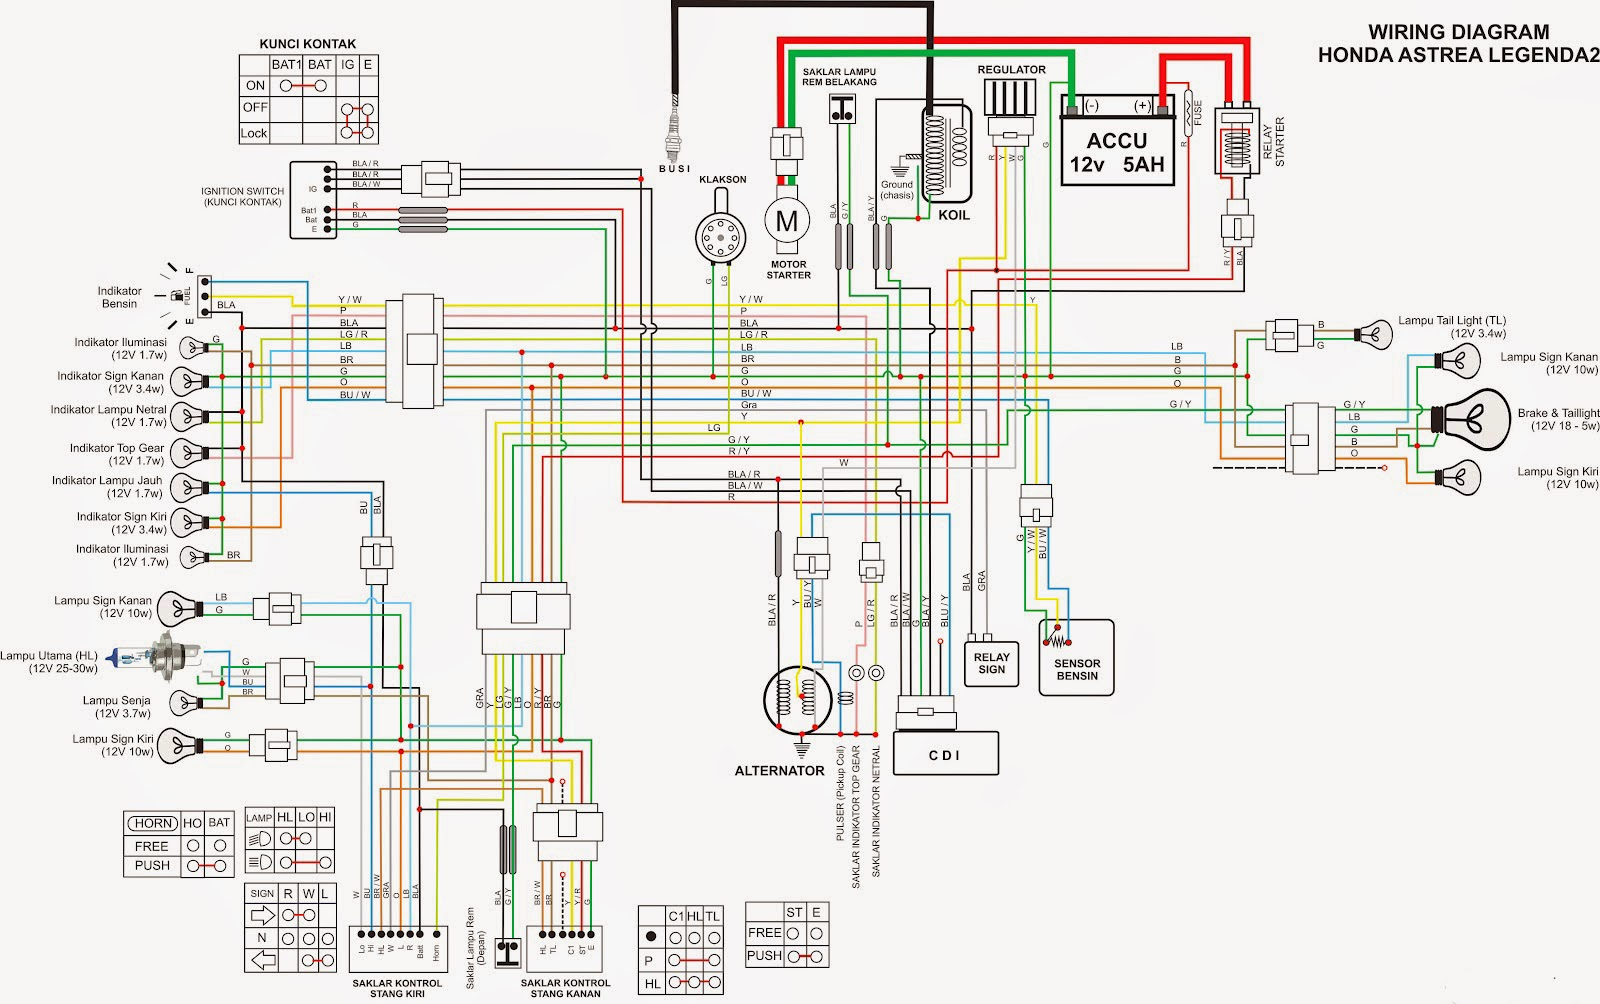 small resolution of jupier z1 wiring diagram wiring diagram yer jupier z1 wiring diagram source wiring diagram jupiter z